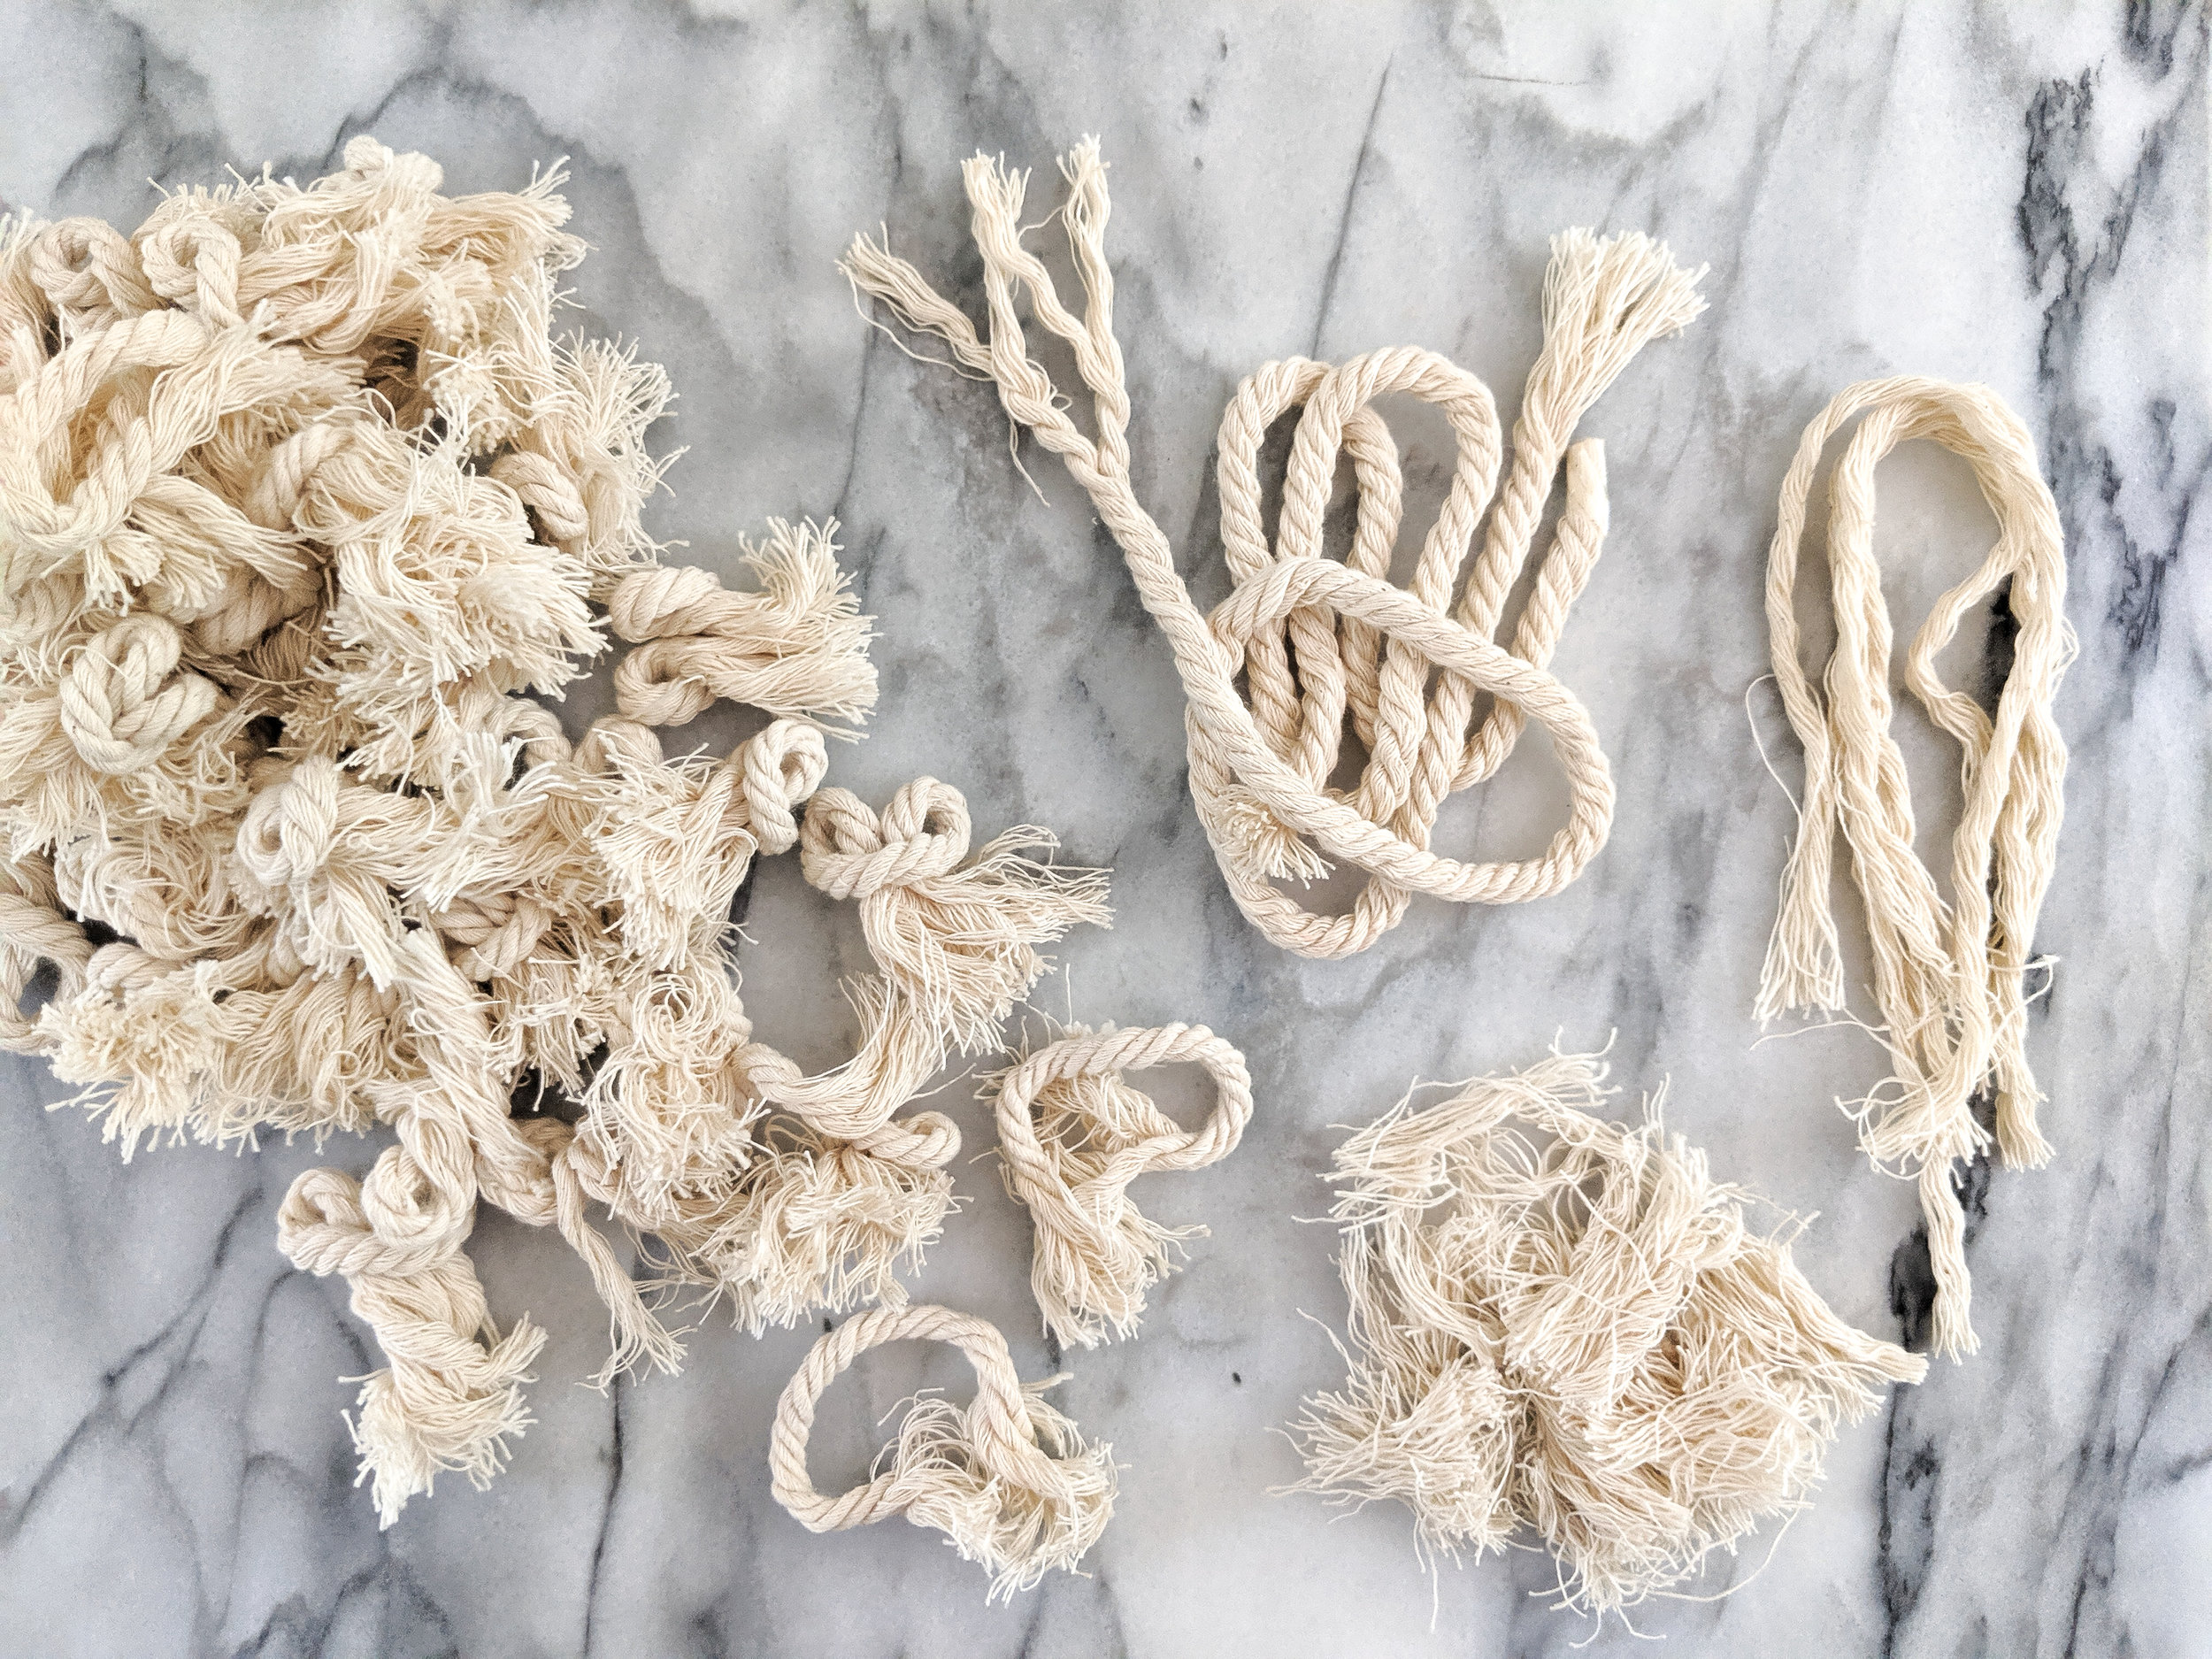 This is all from the same rope source. This can be unwound and made into softer groups of cotton. The small shredded bits are leftover trim from my tassels that can be used as stuffing!